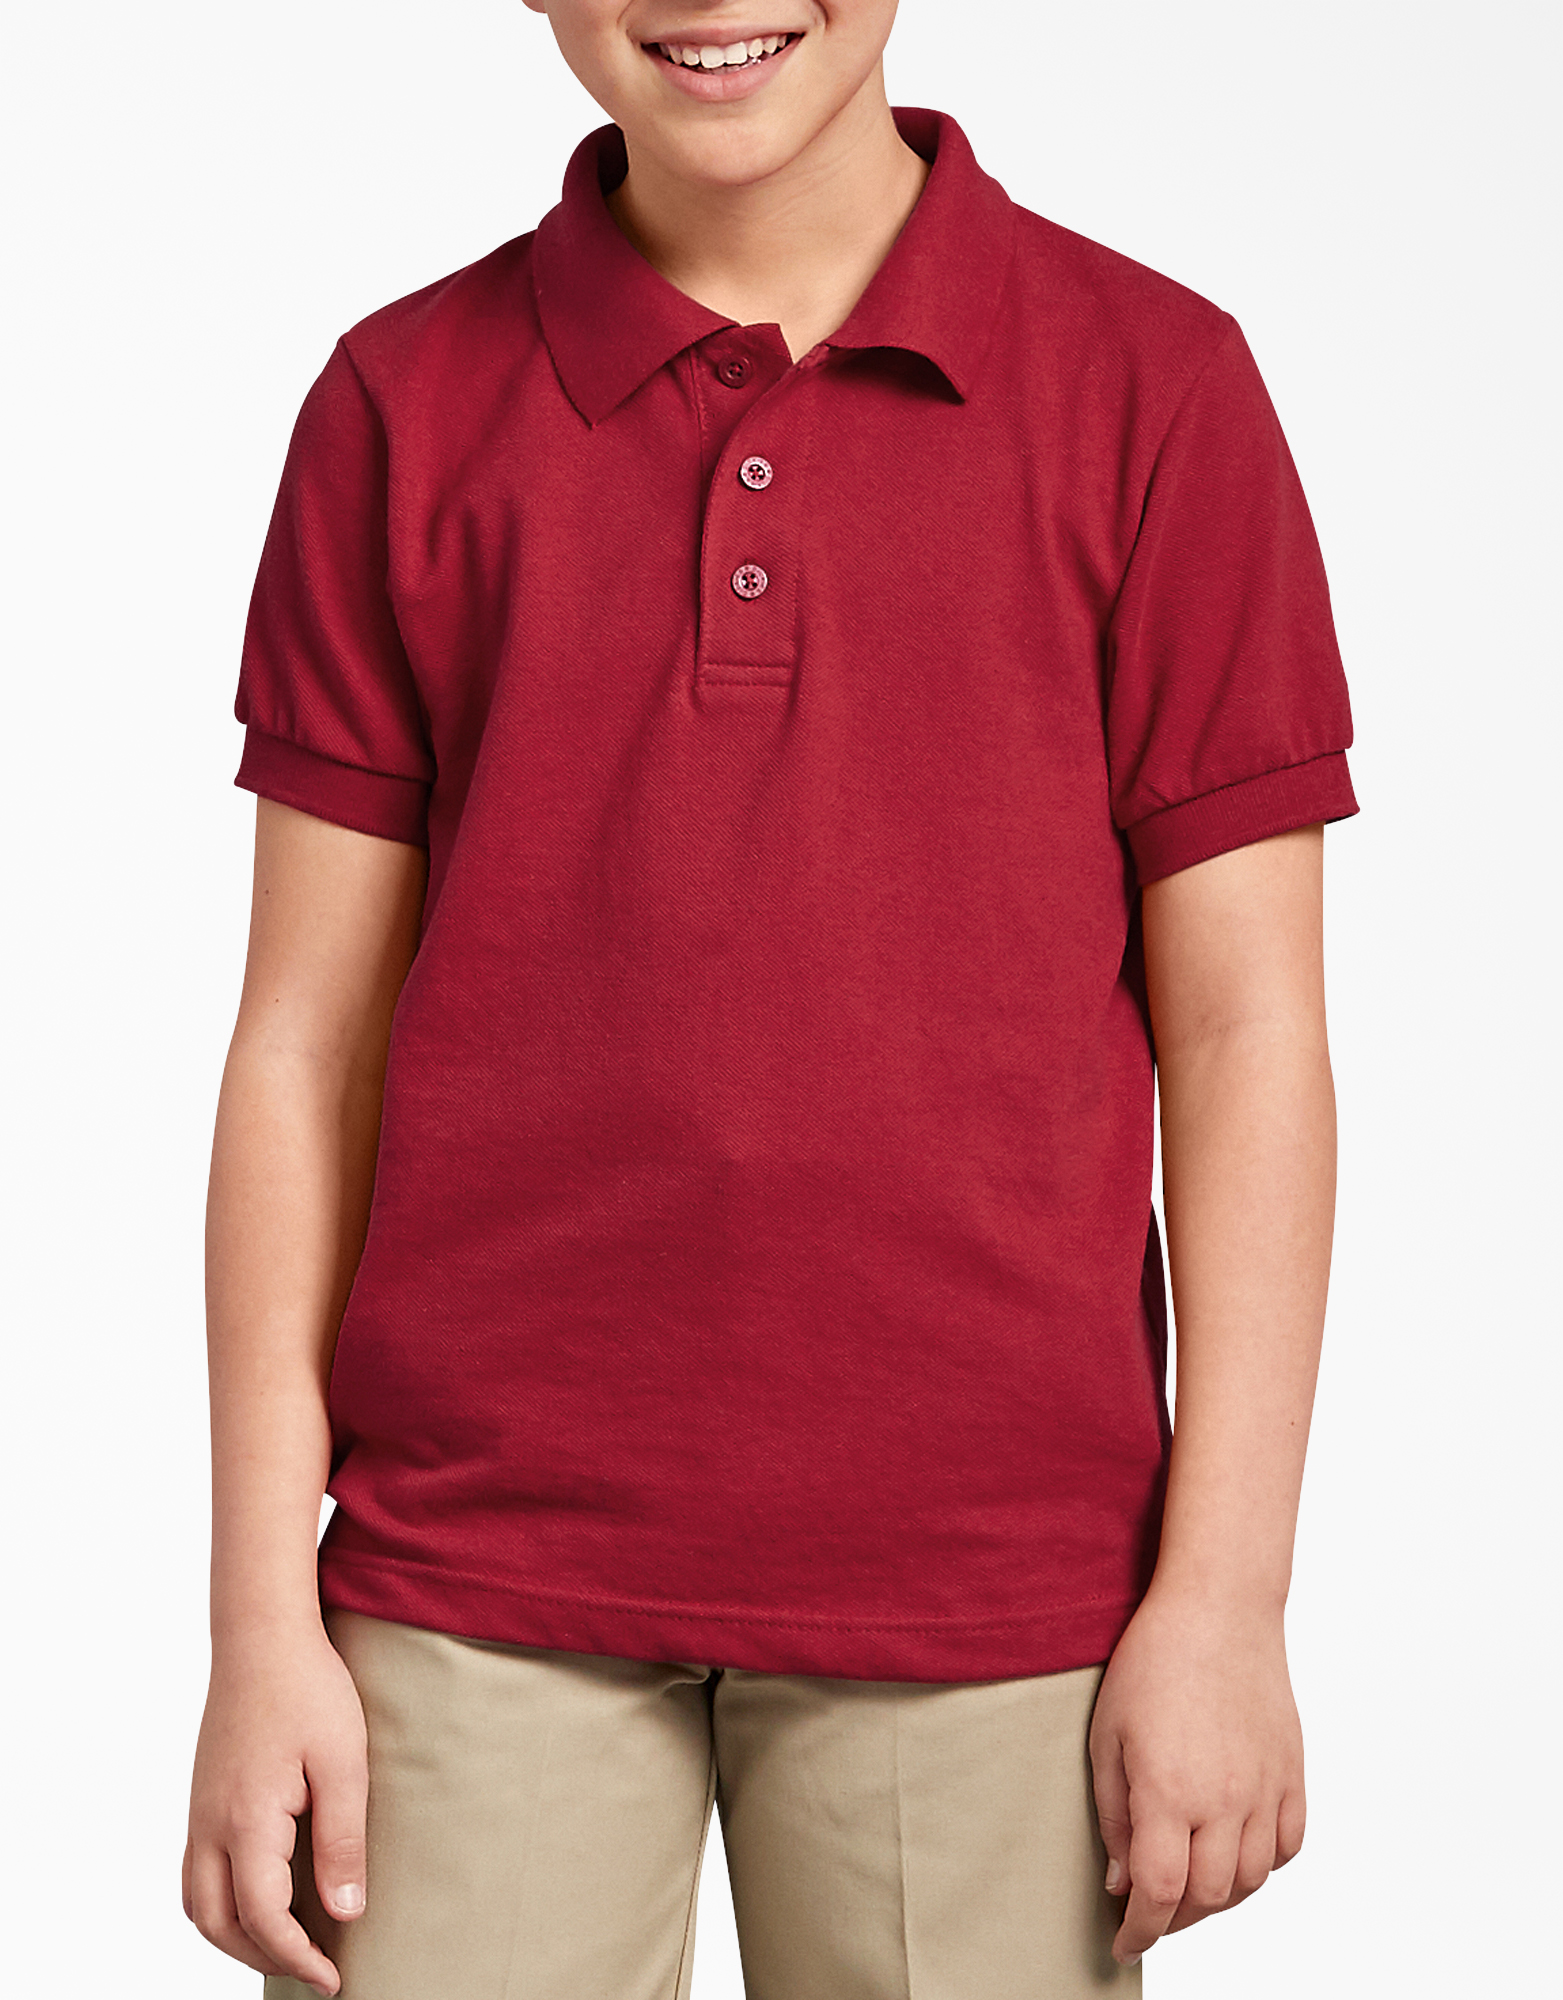 Kids' Short Sleeve Pique Polo Shirt, 8-20 - English Red (ER)